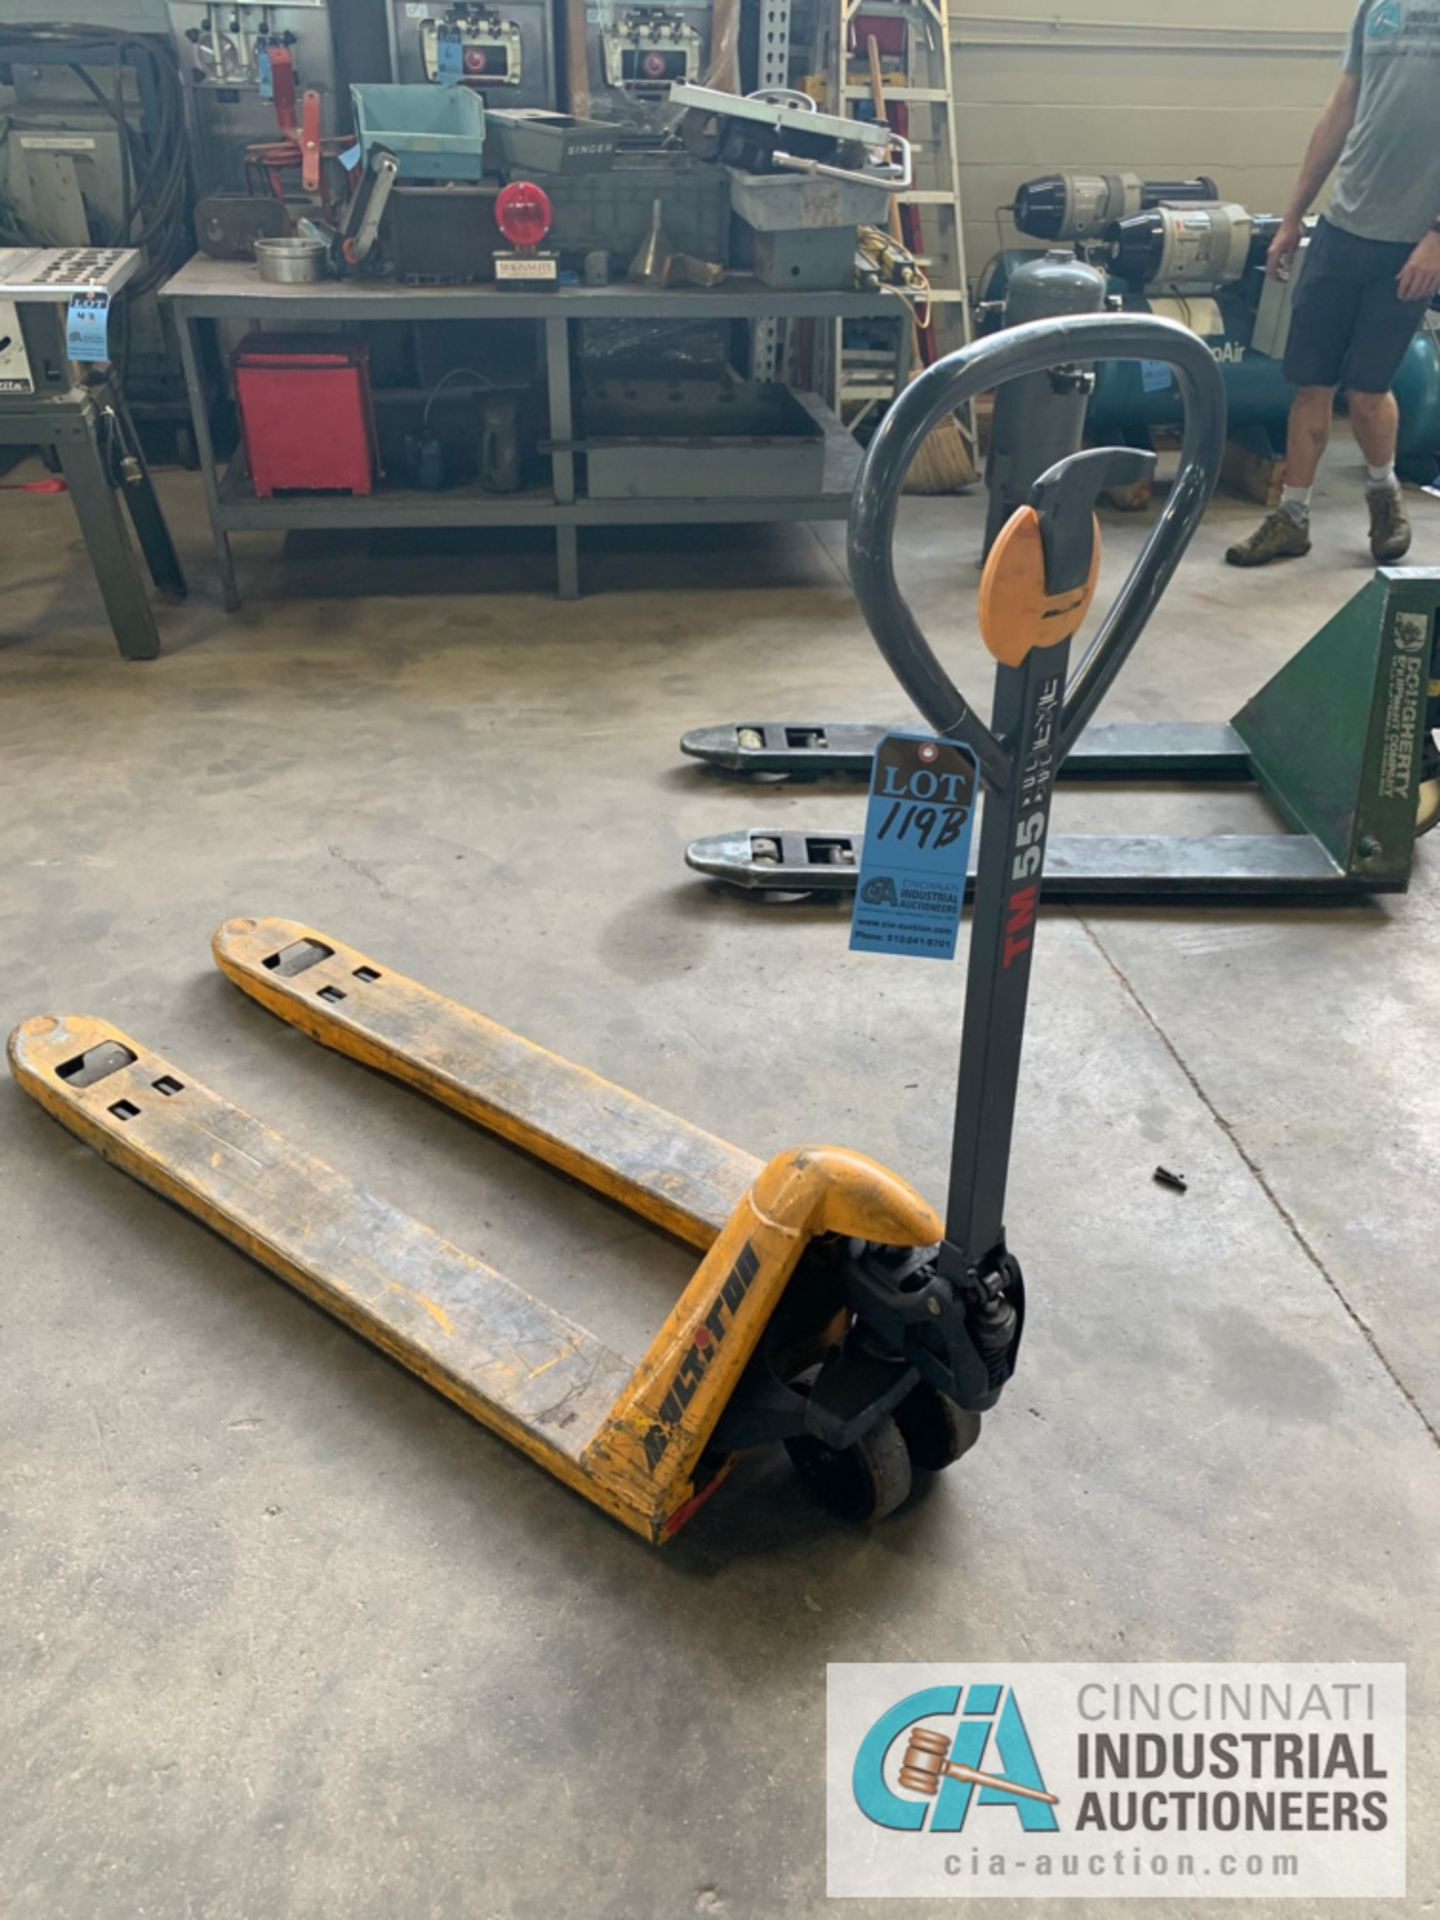 MULTITON NARROW FORK HYDRAULIC PALLET TRUCK